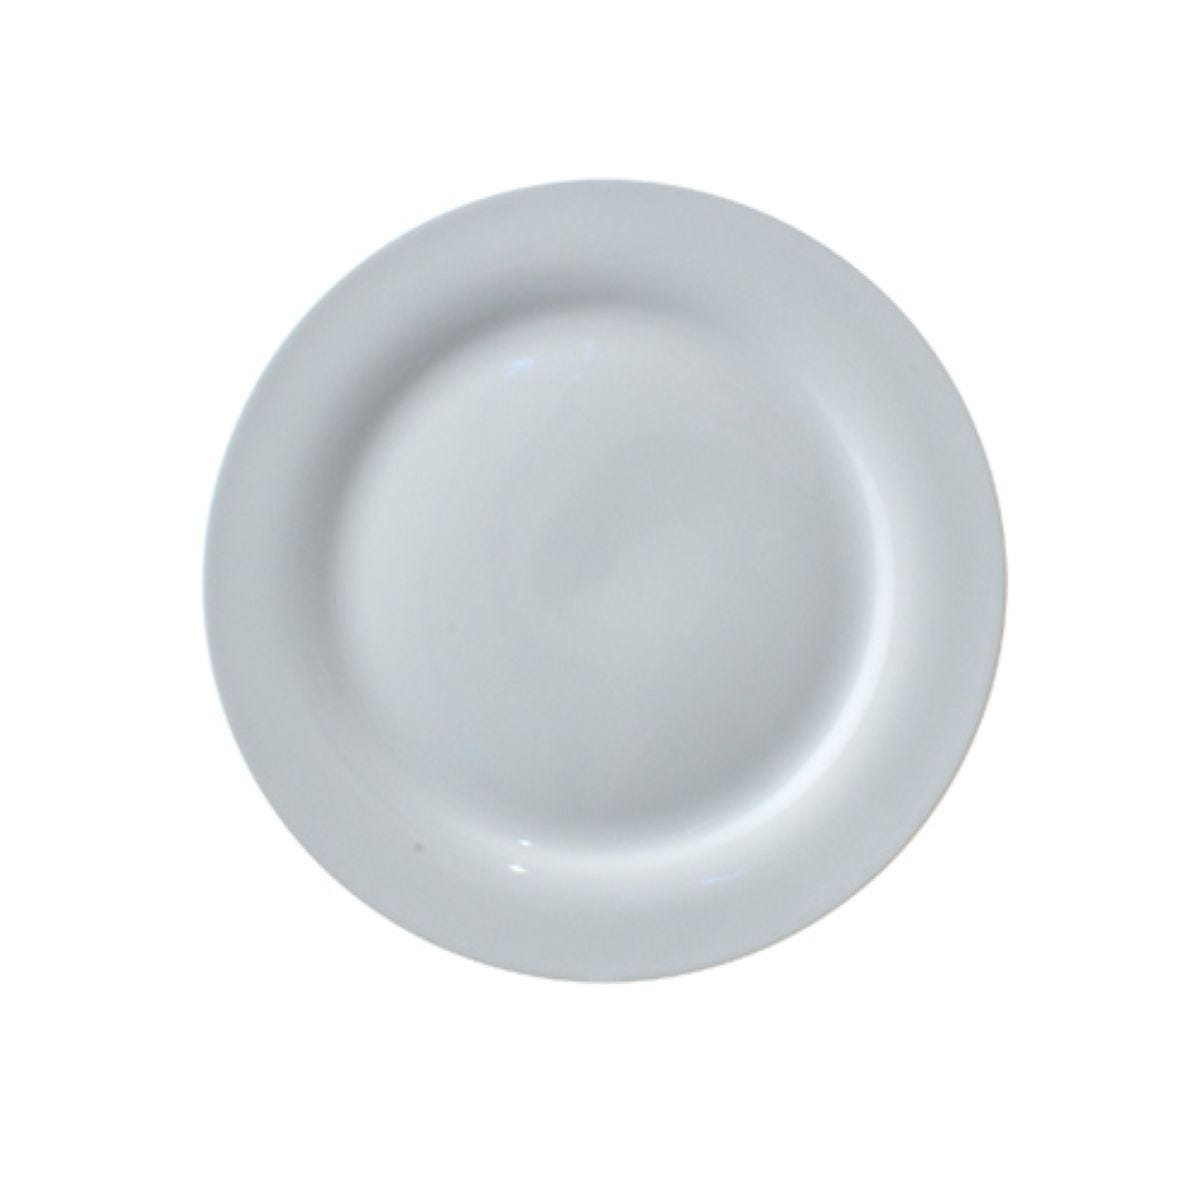 Robert Dyas White Side Plate